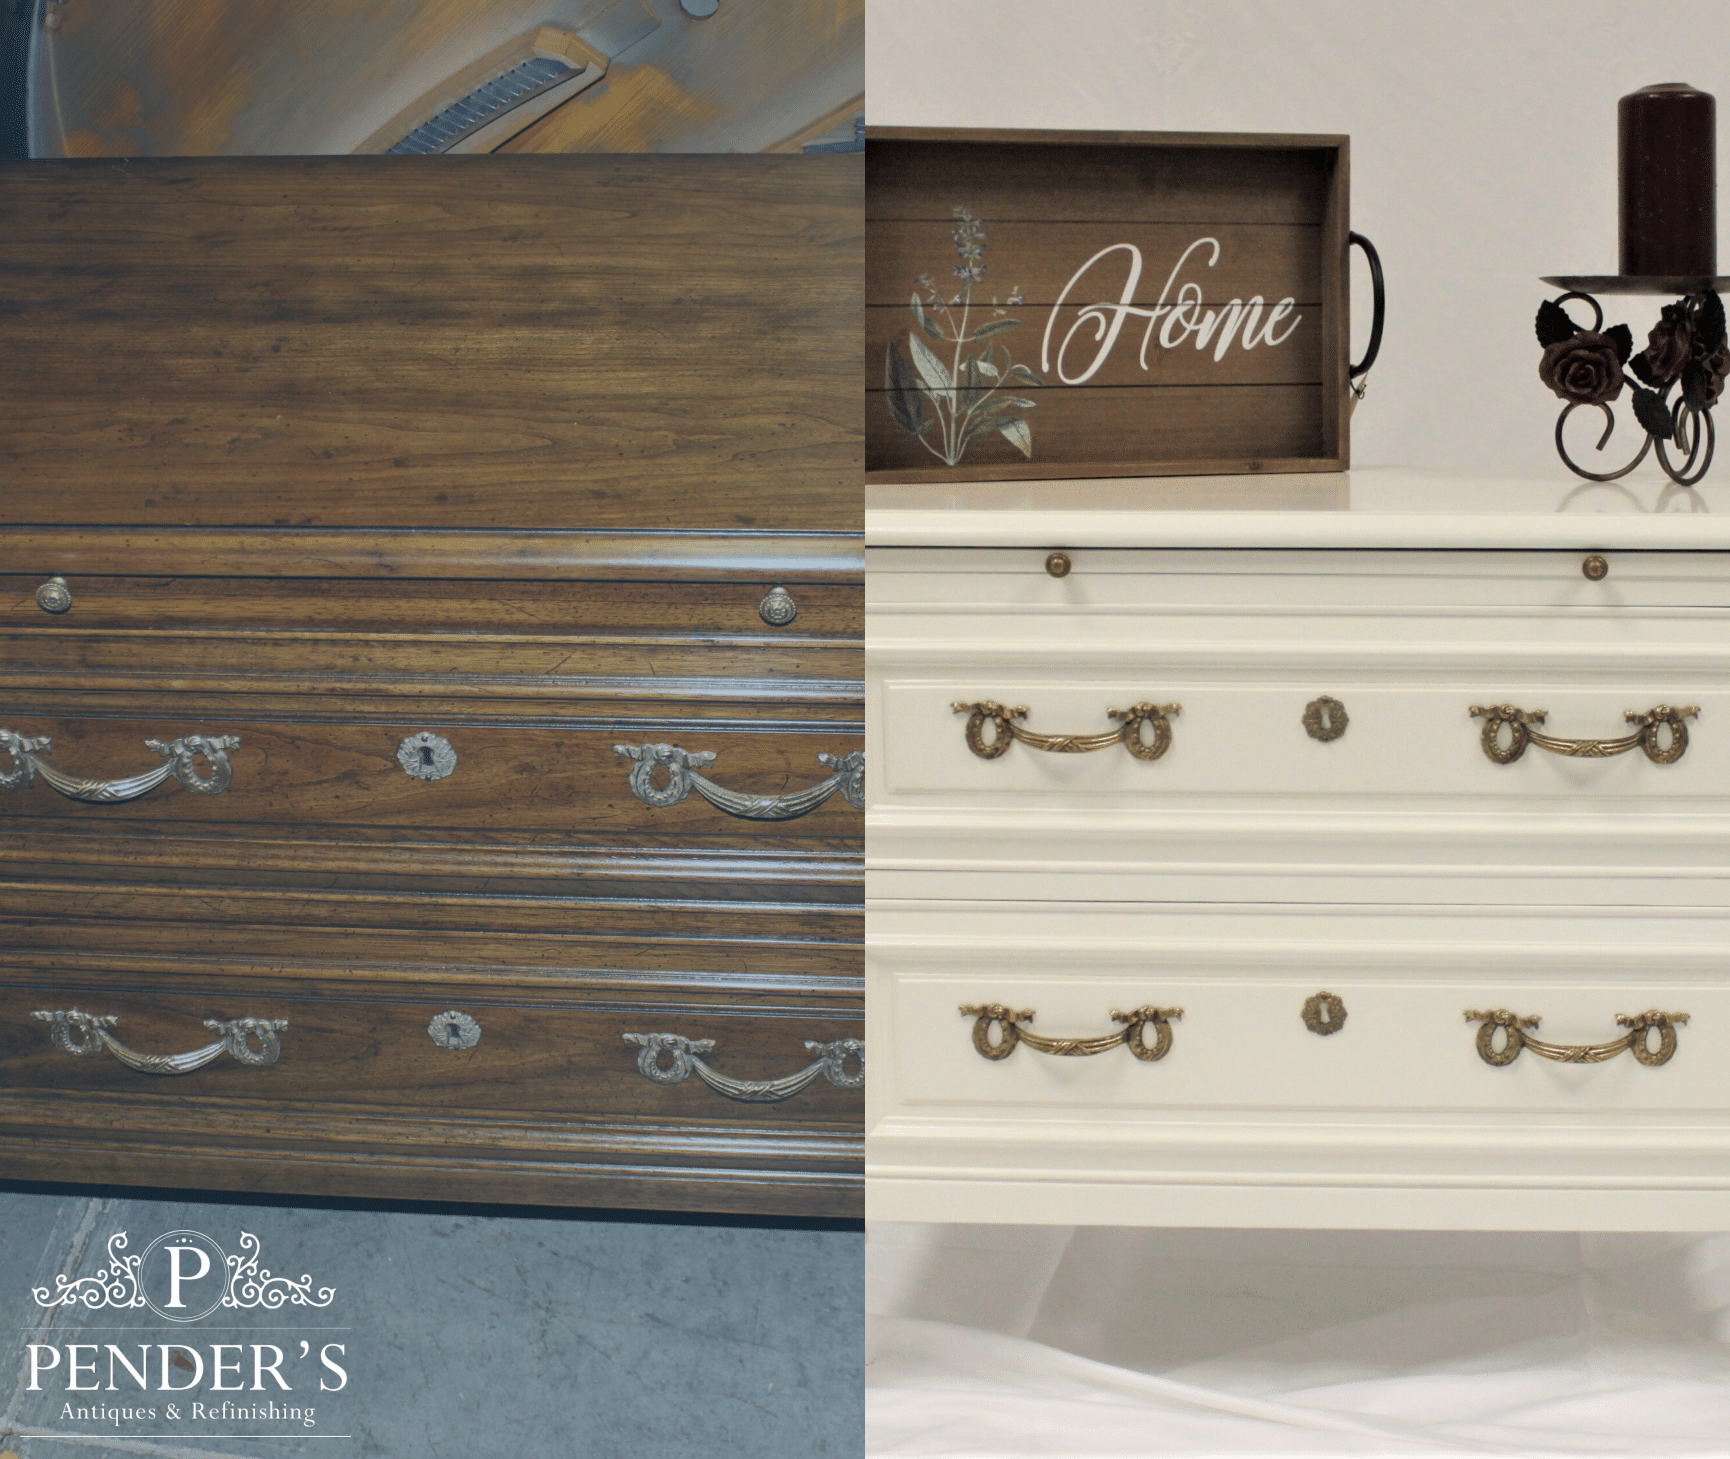 Lacquer Chest completed by Penders